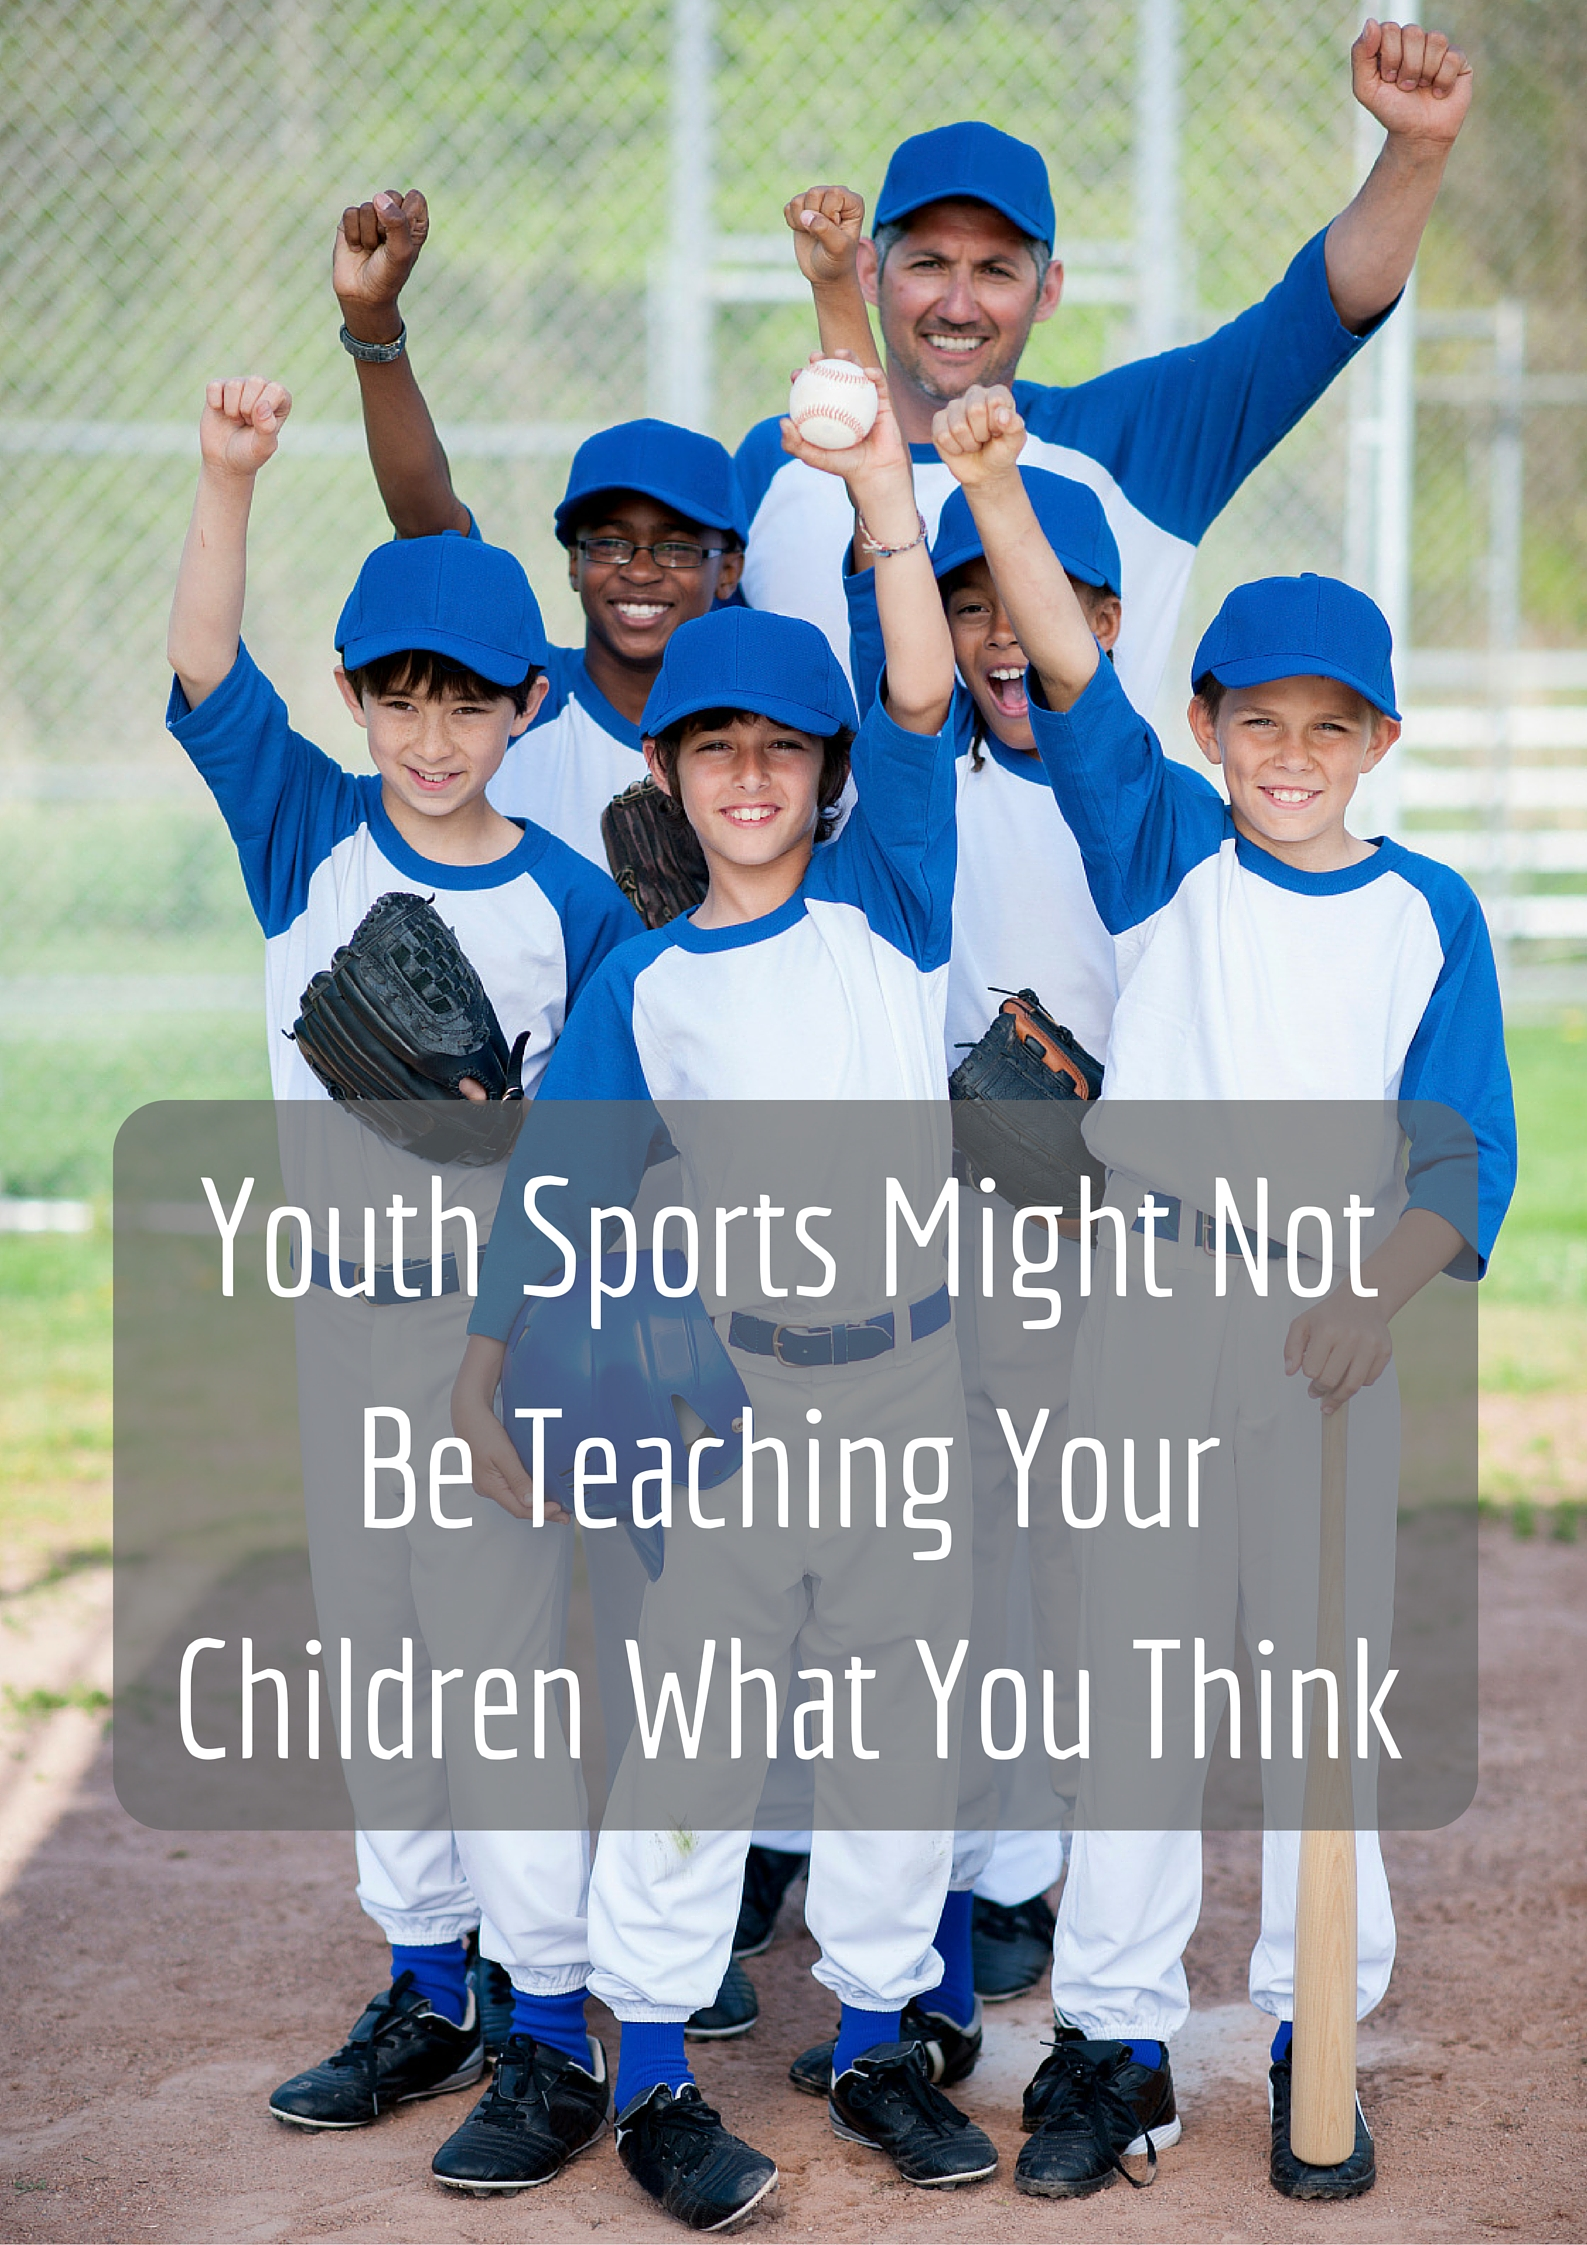 Youth Sports Might Not Be Teaching Your Children What You Think